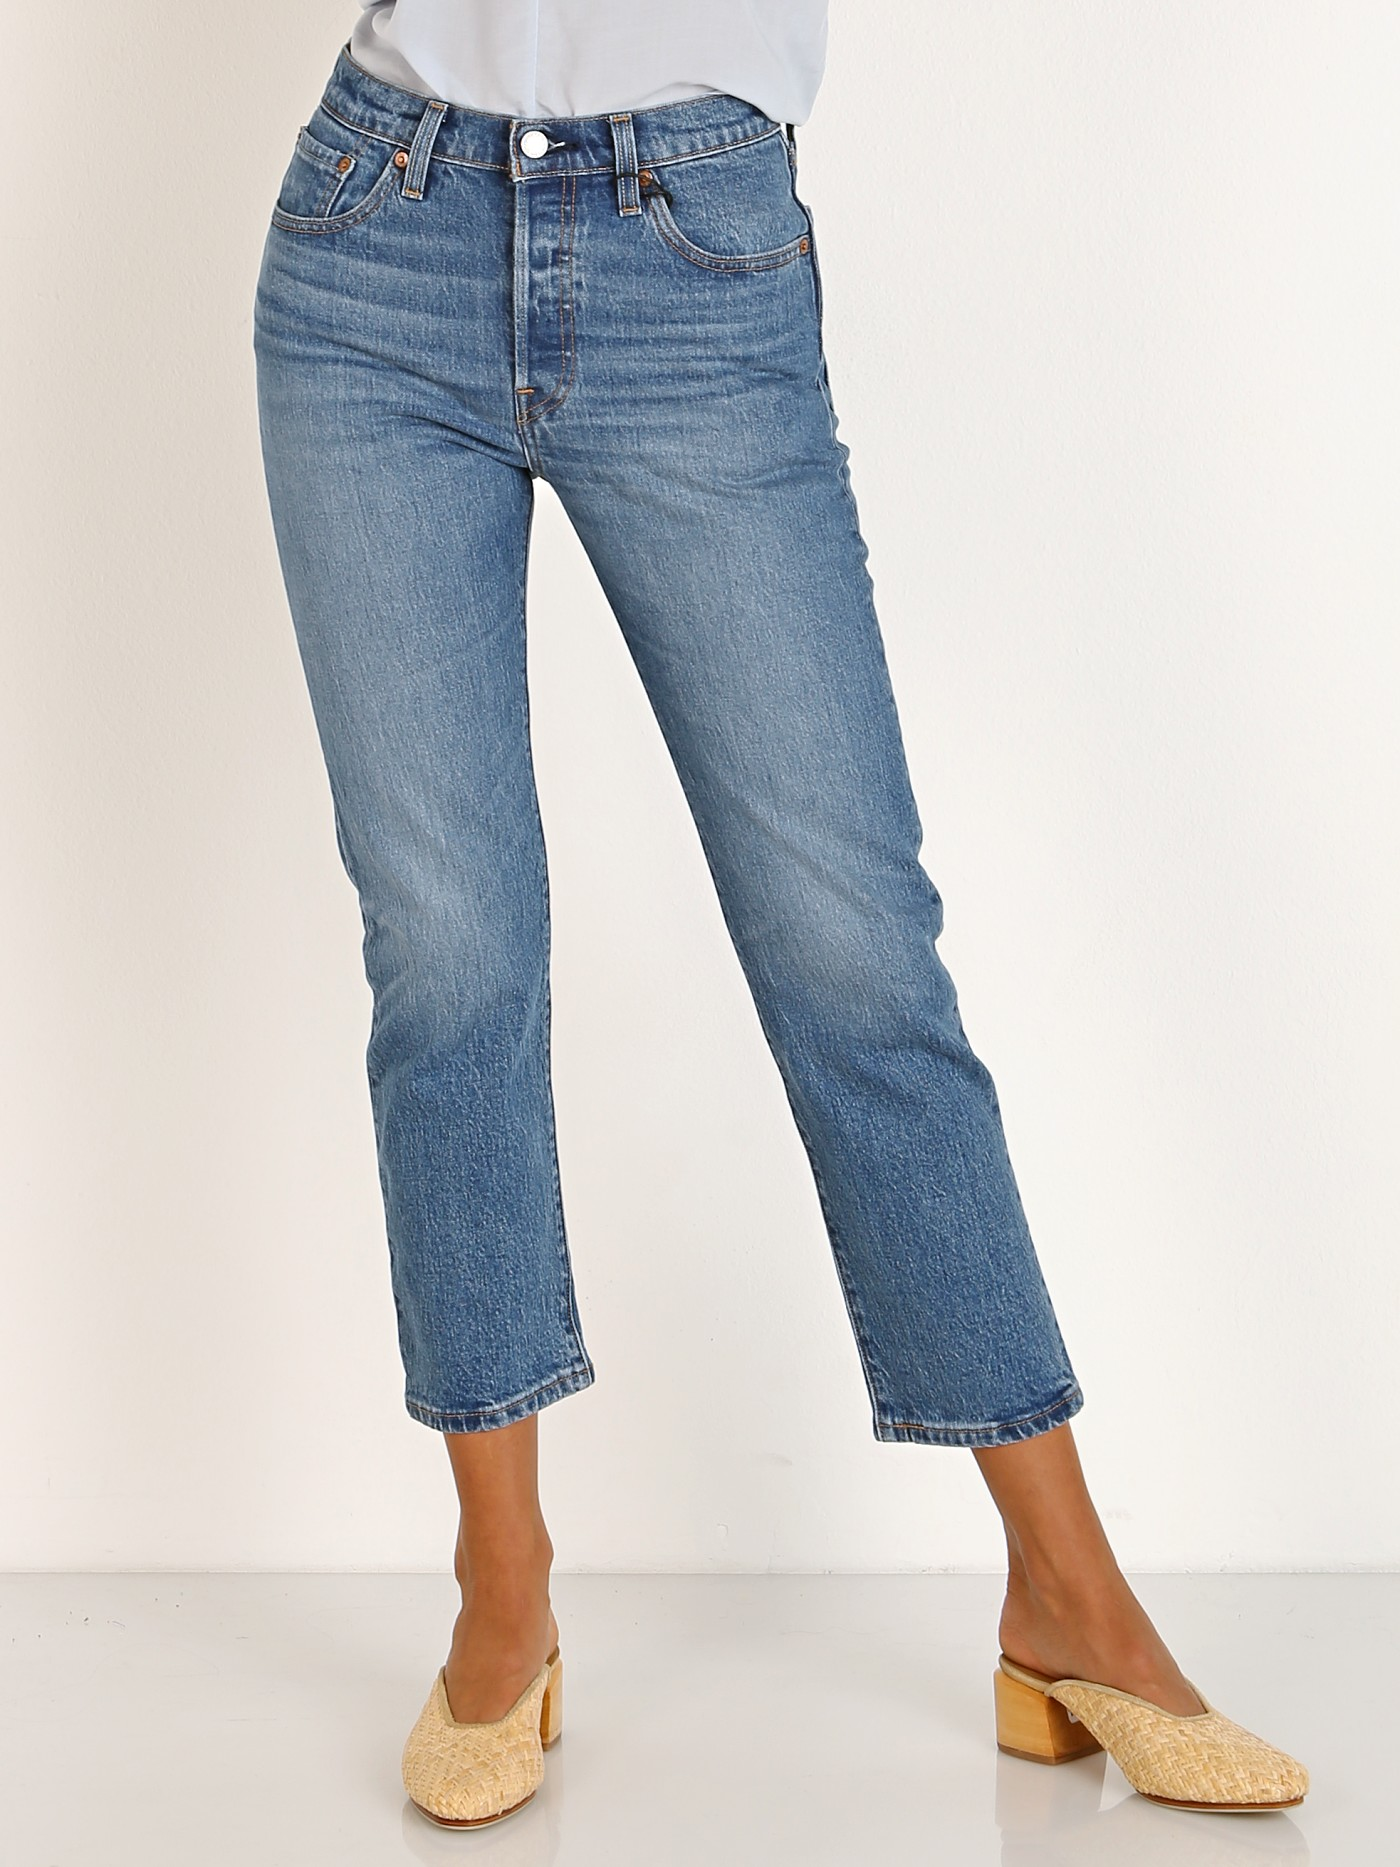 cozy fresh up-to-datestyling latest selection Levi's 501 Crop Jean Jive Song